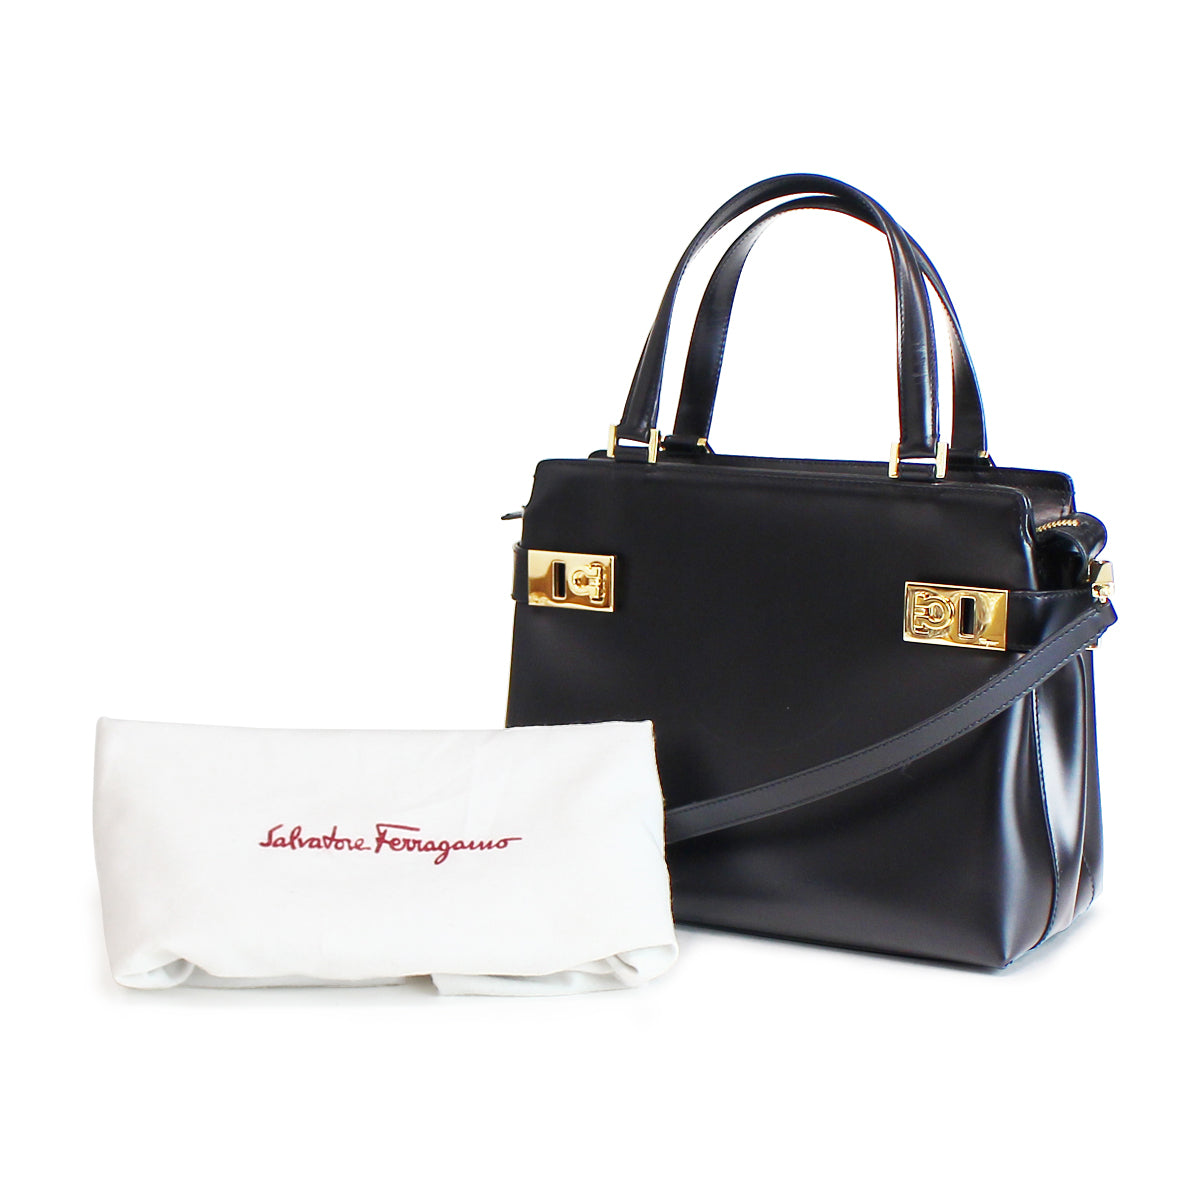 SALVATORE FERRAGAMO AQ-21 Gancini 2 way Shoulder Bag – CHUCO STYLE ff2d9e288c0d3